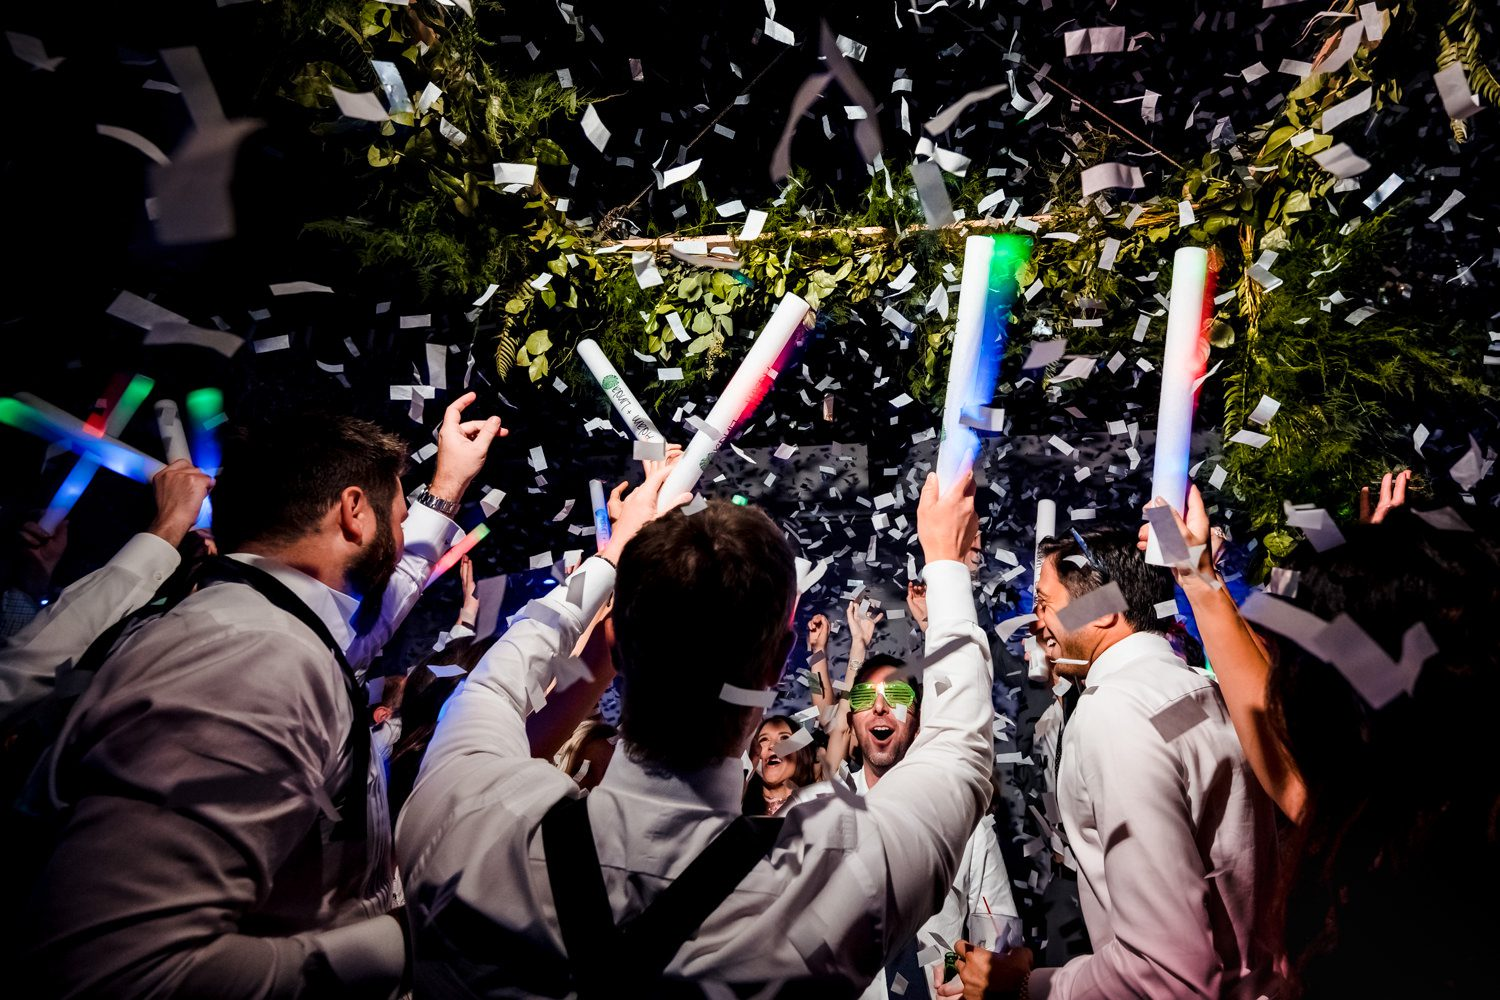 People throwing confetti after a wedding in miami